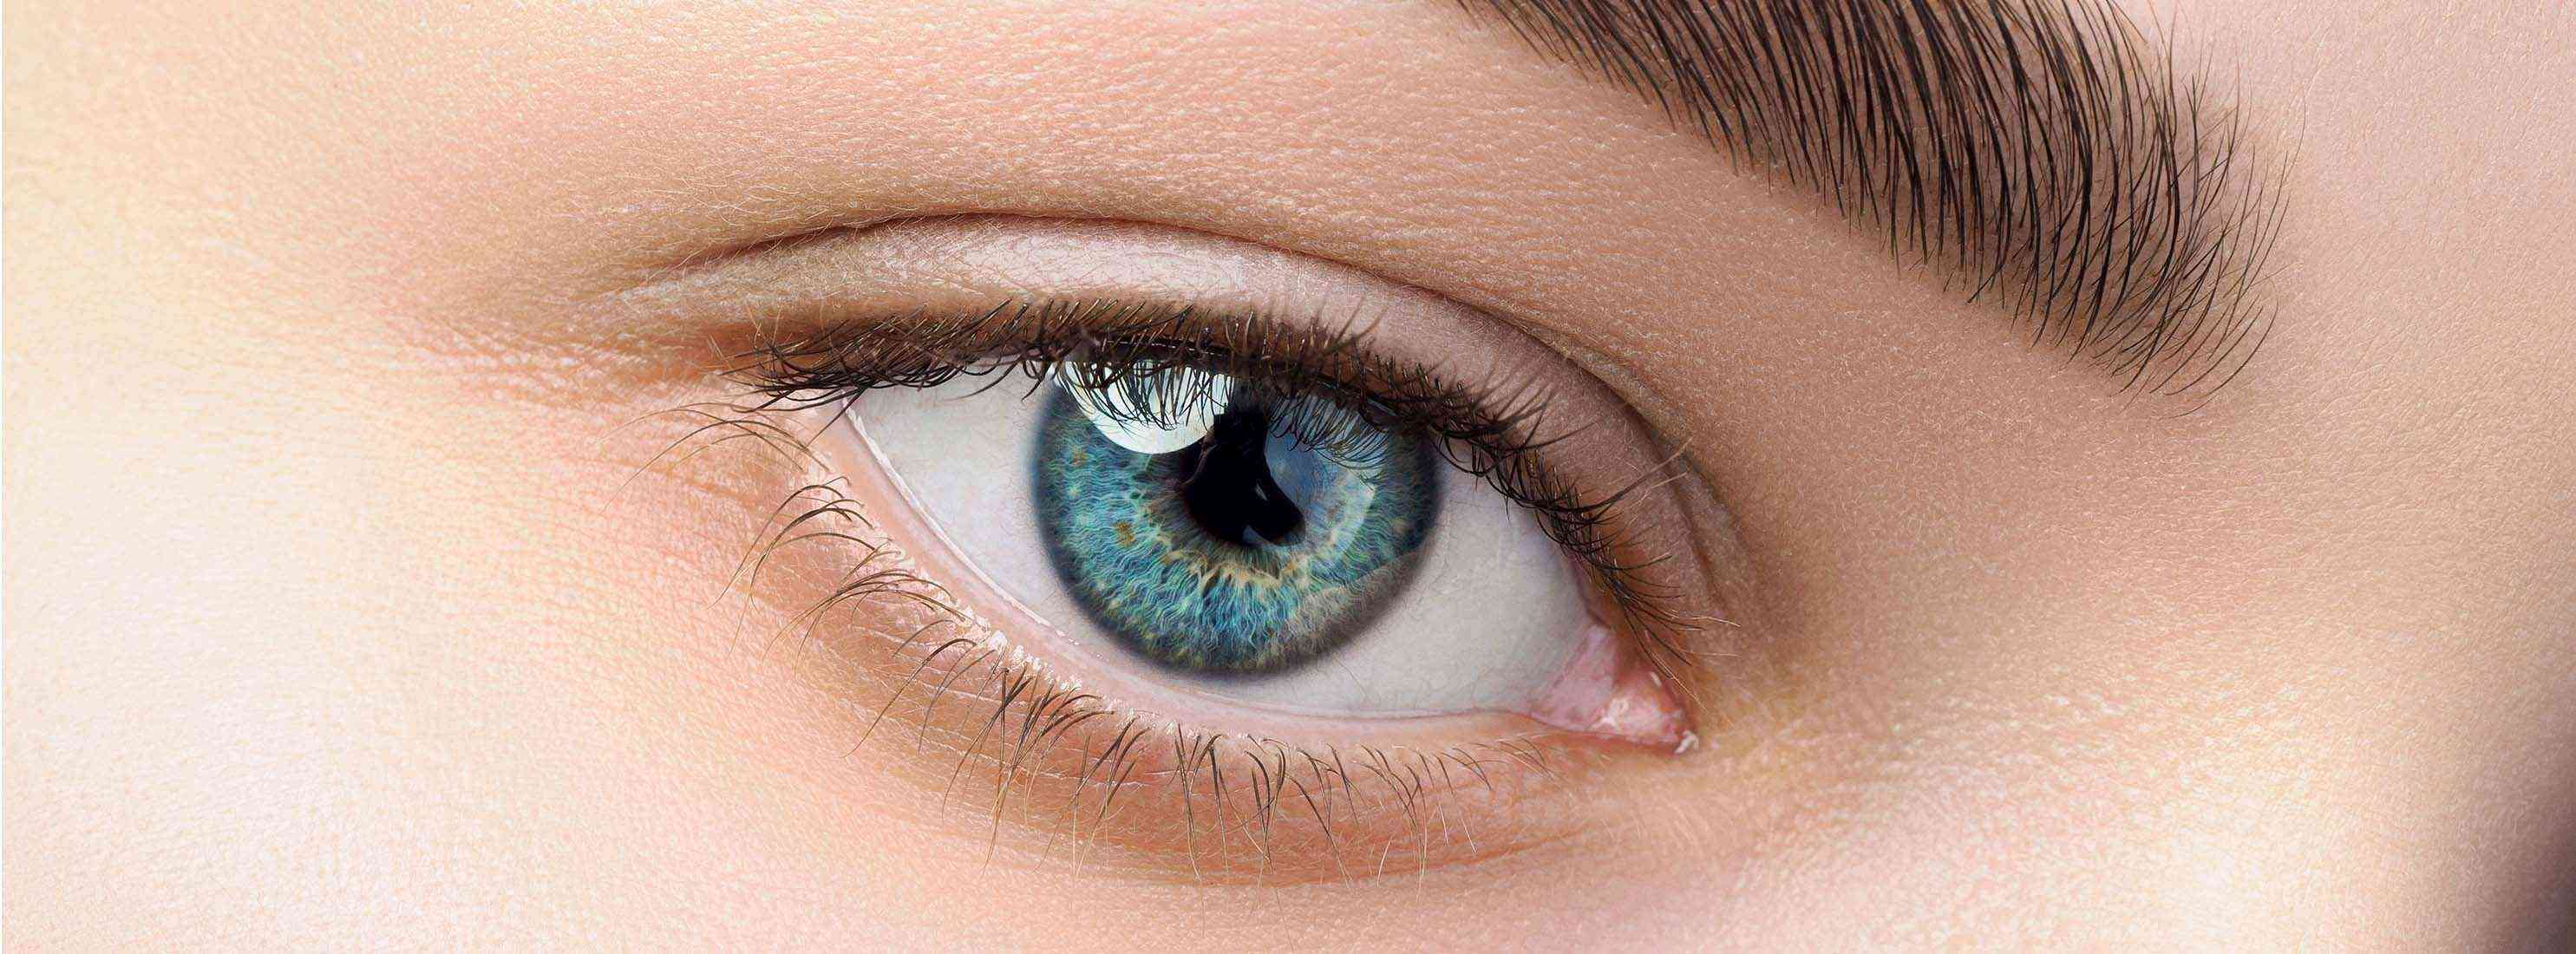 Coopervision Contact Lenses 05 2970x1100